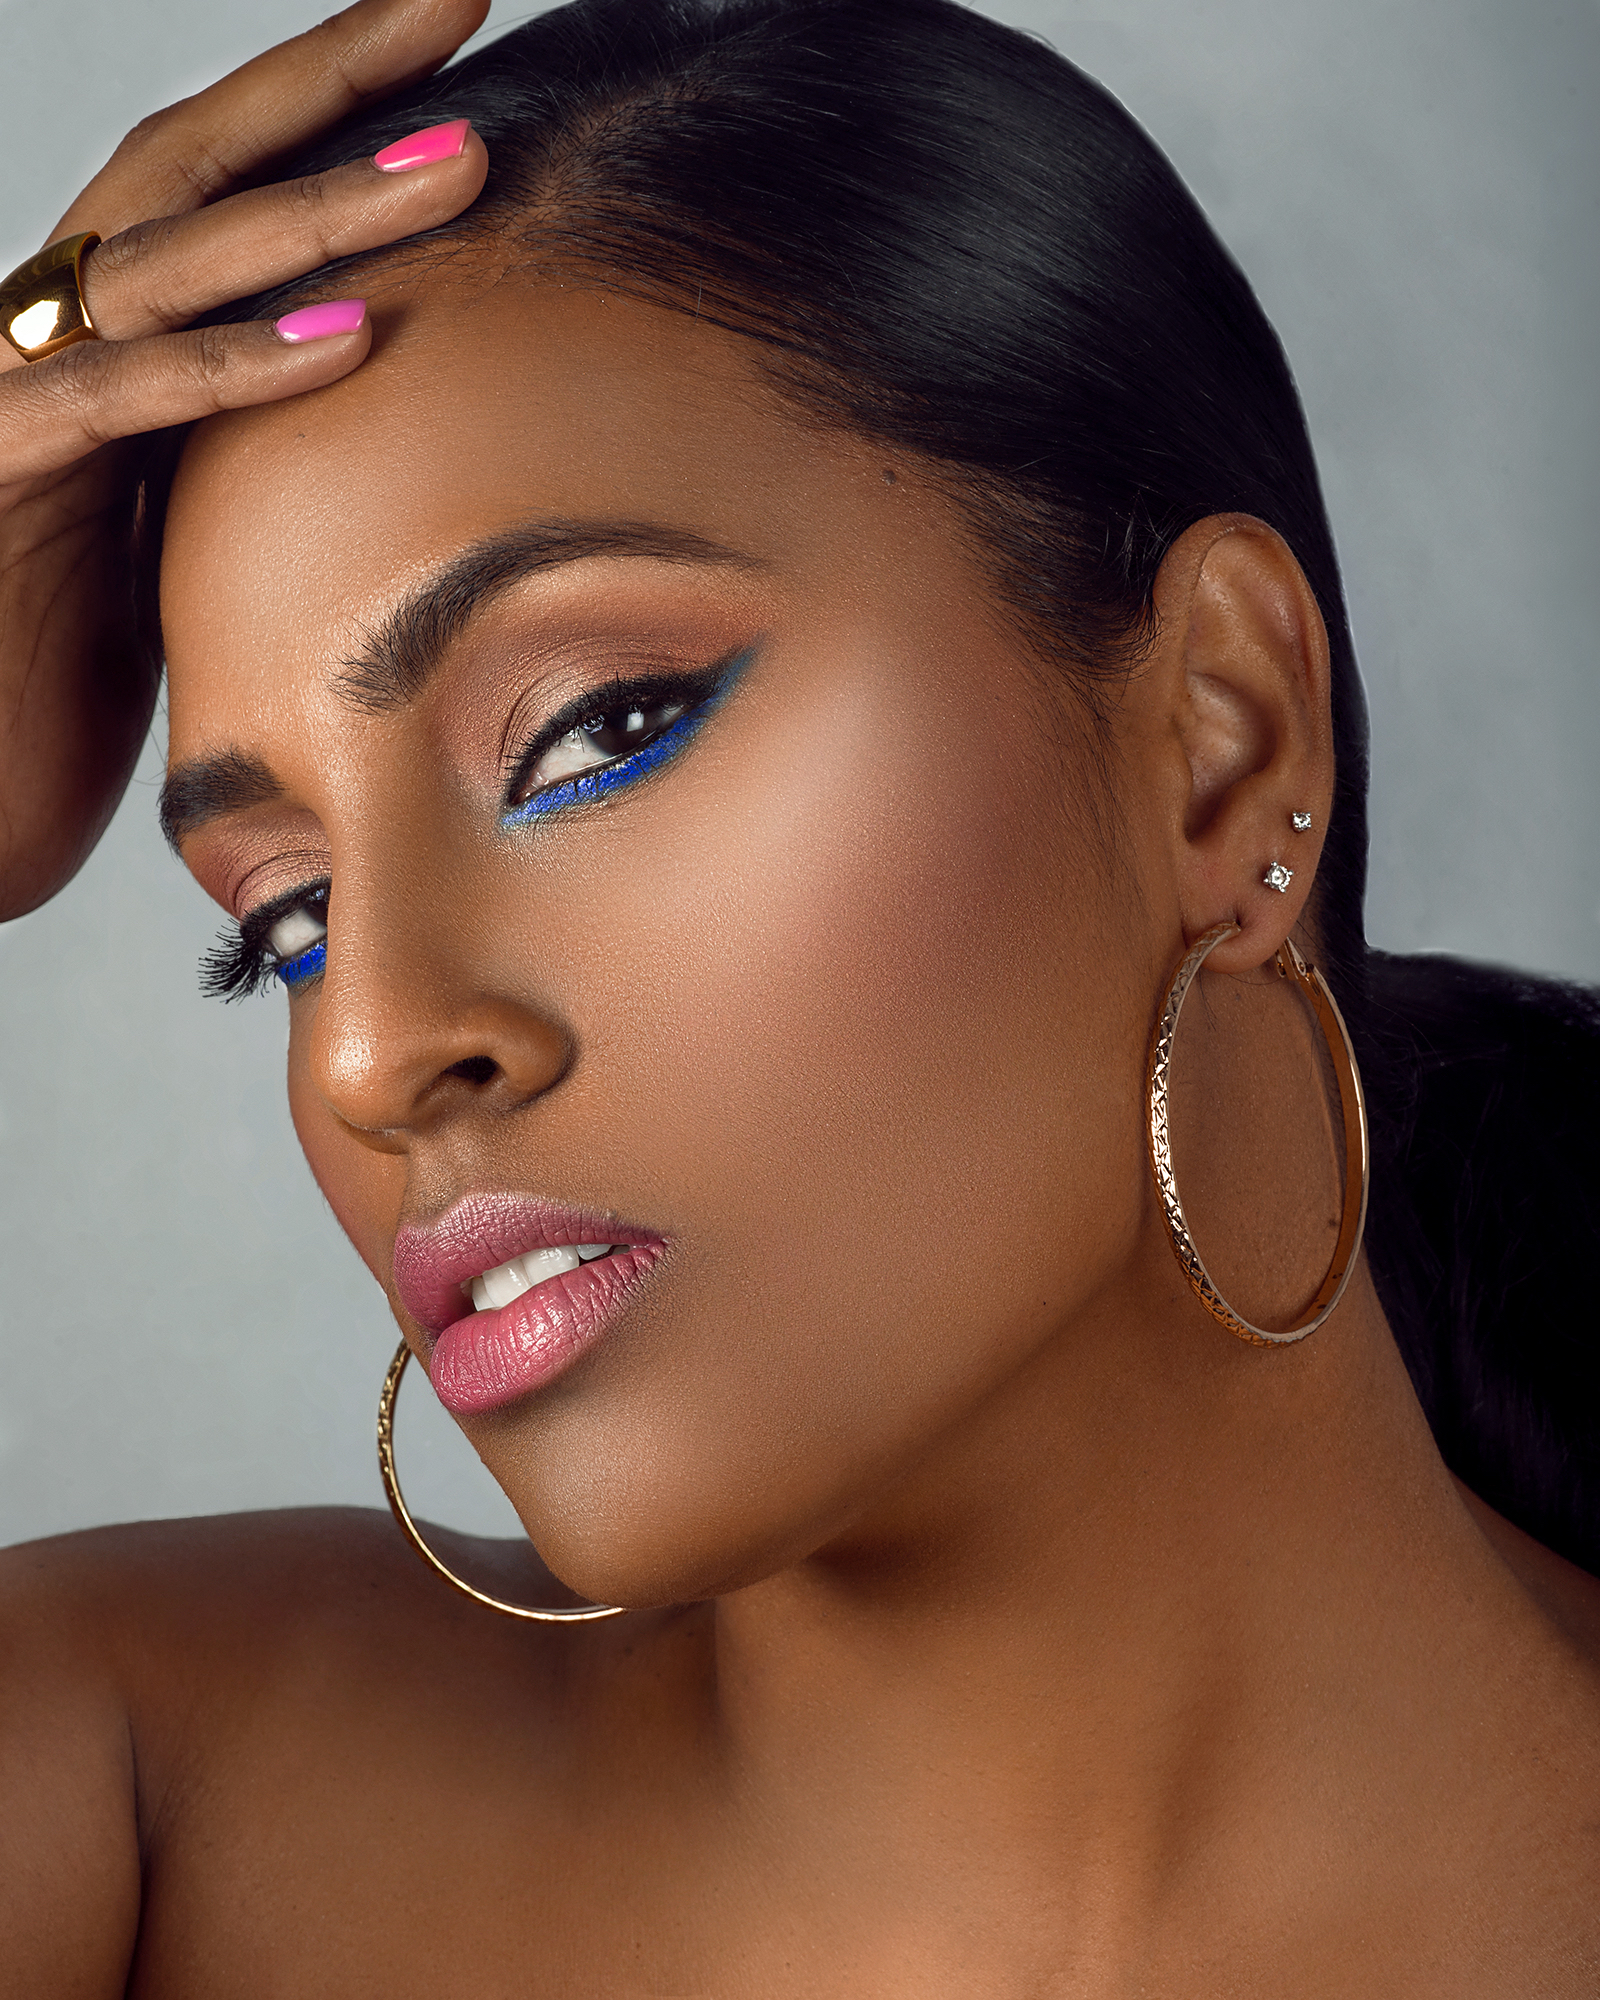 Natural Makeup with Highlighted, Glowing, Dewy Skin and Blue Eye Shadow by Jaynelle Lording